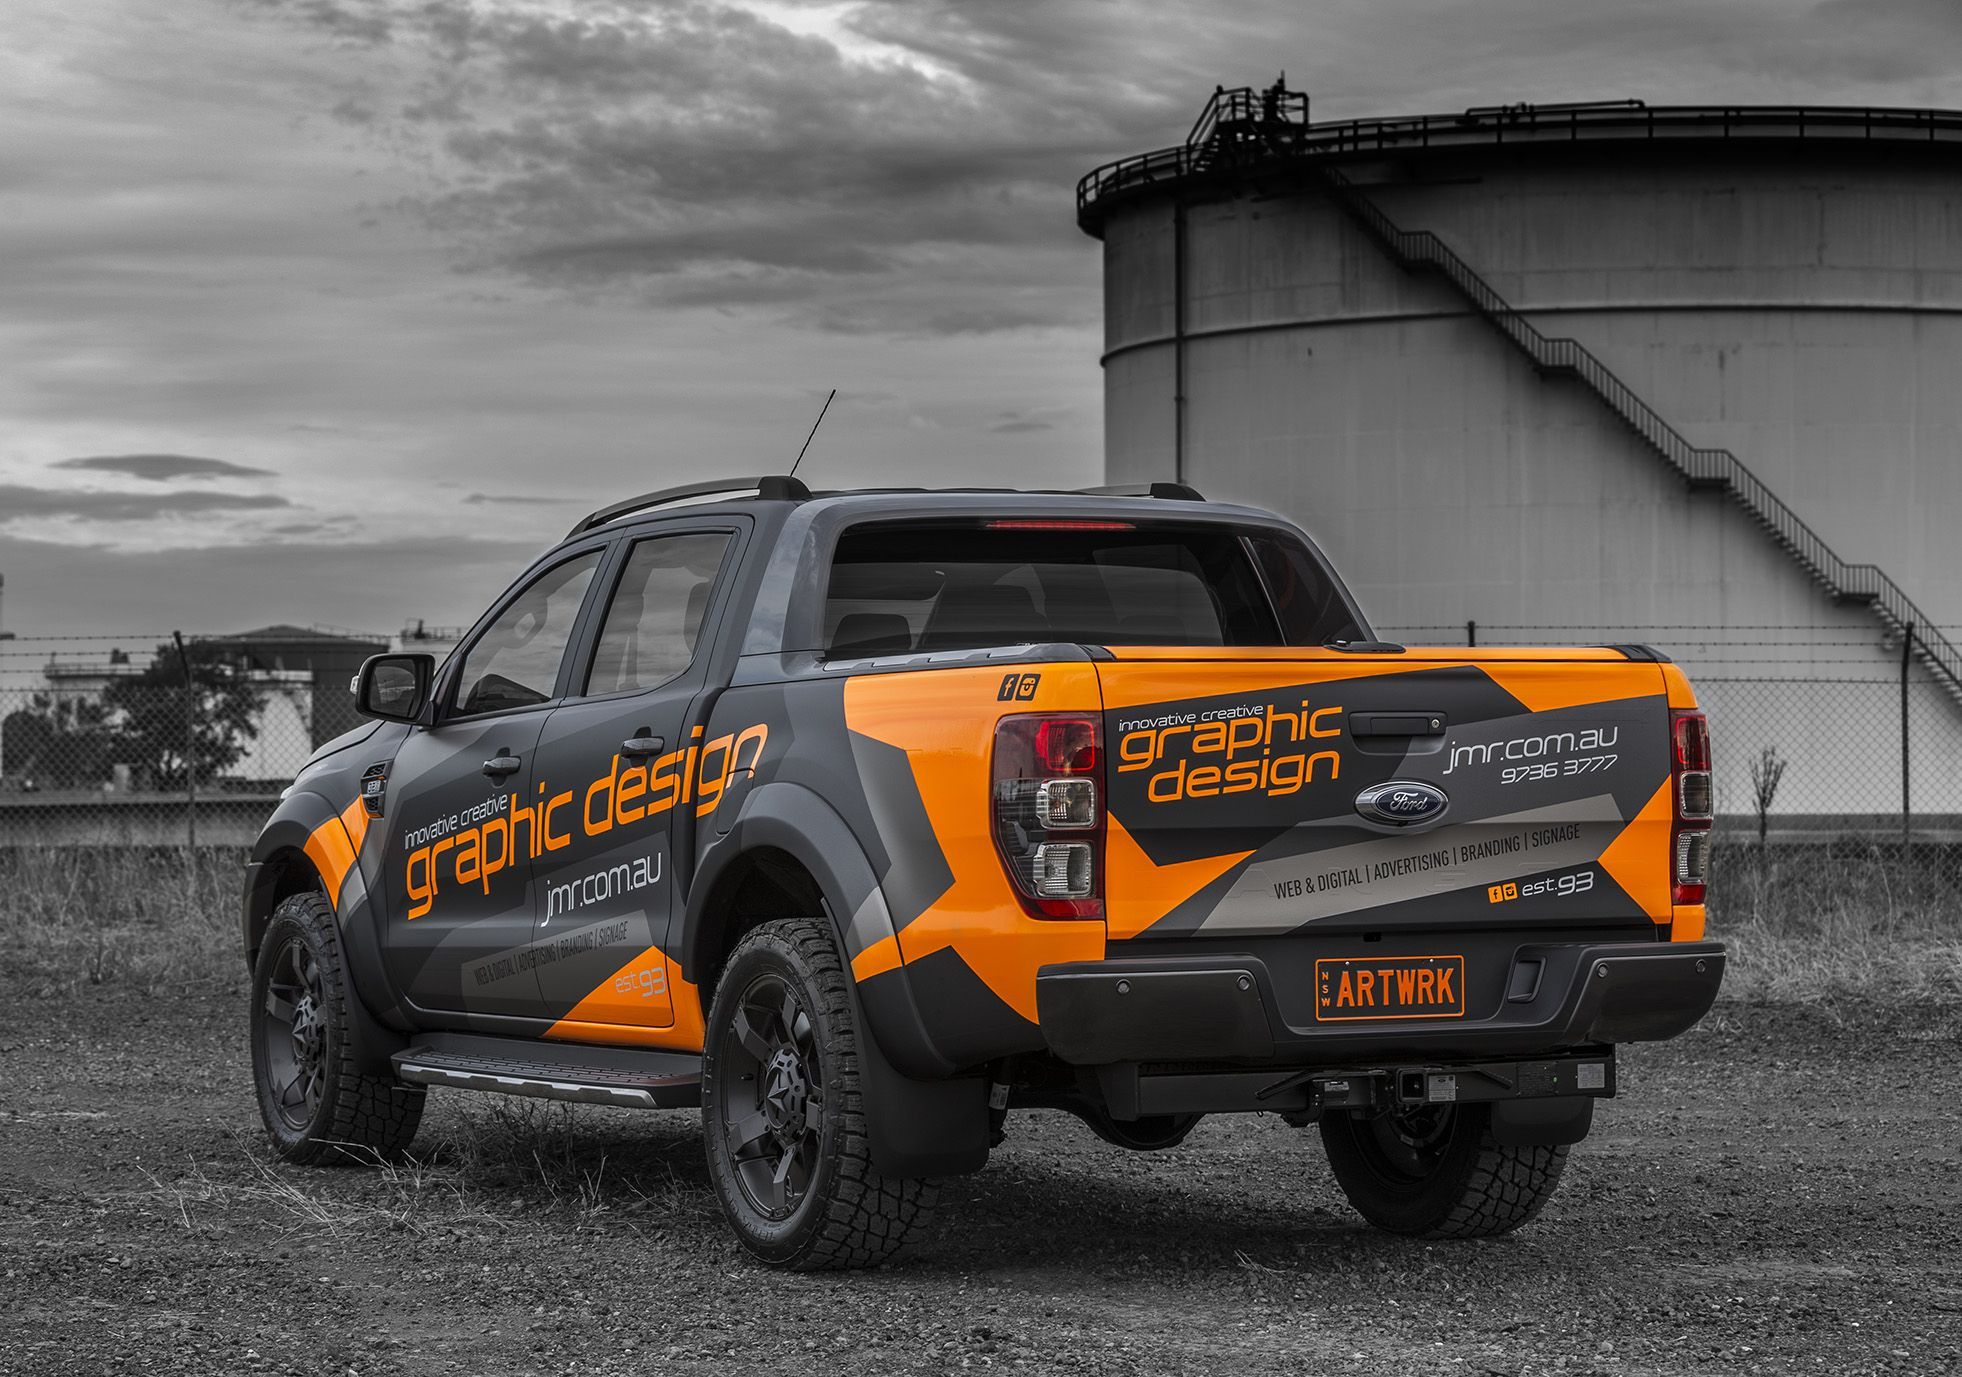 Jmr Creative Design Ford Ranger Wildtrak Wrapped In Matte